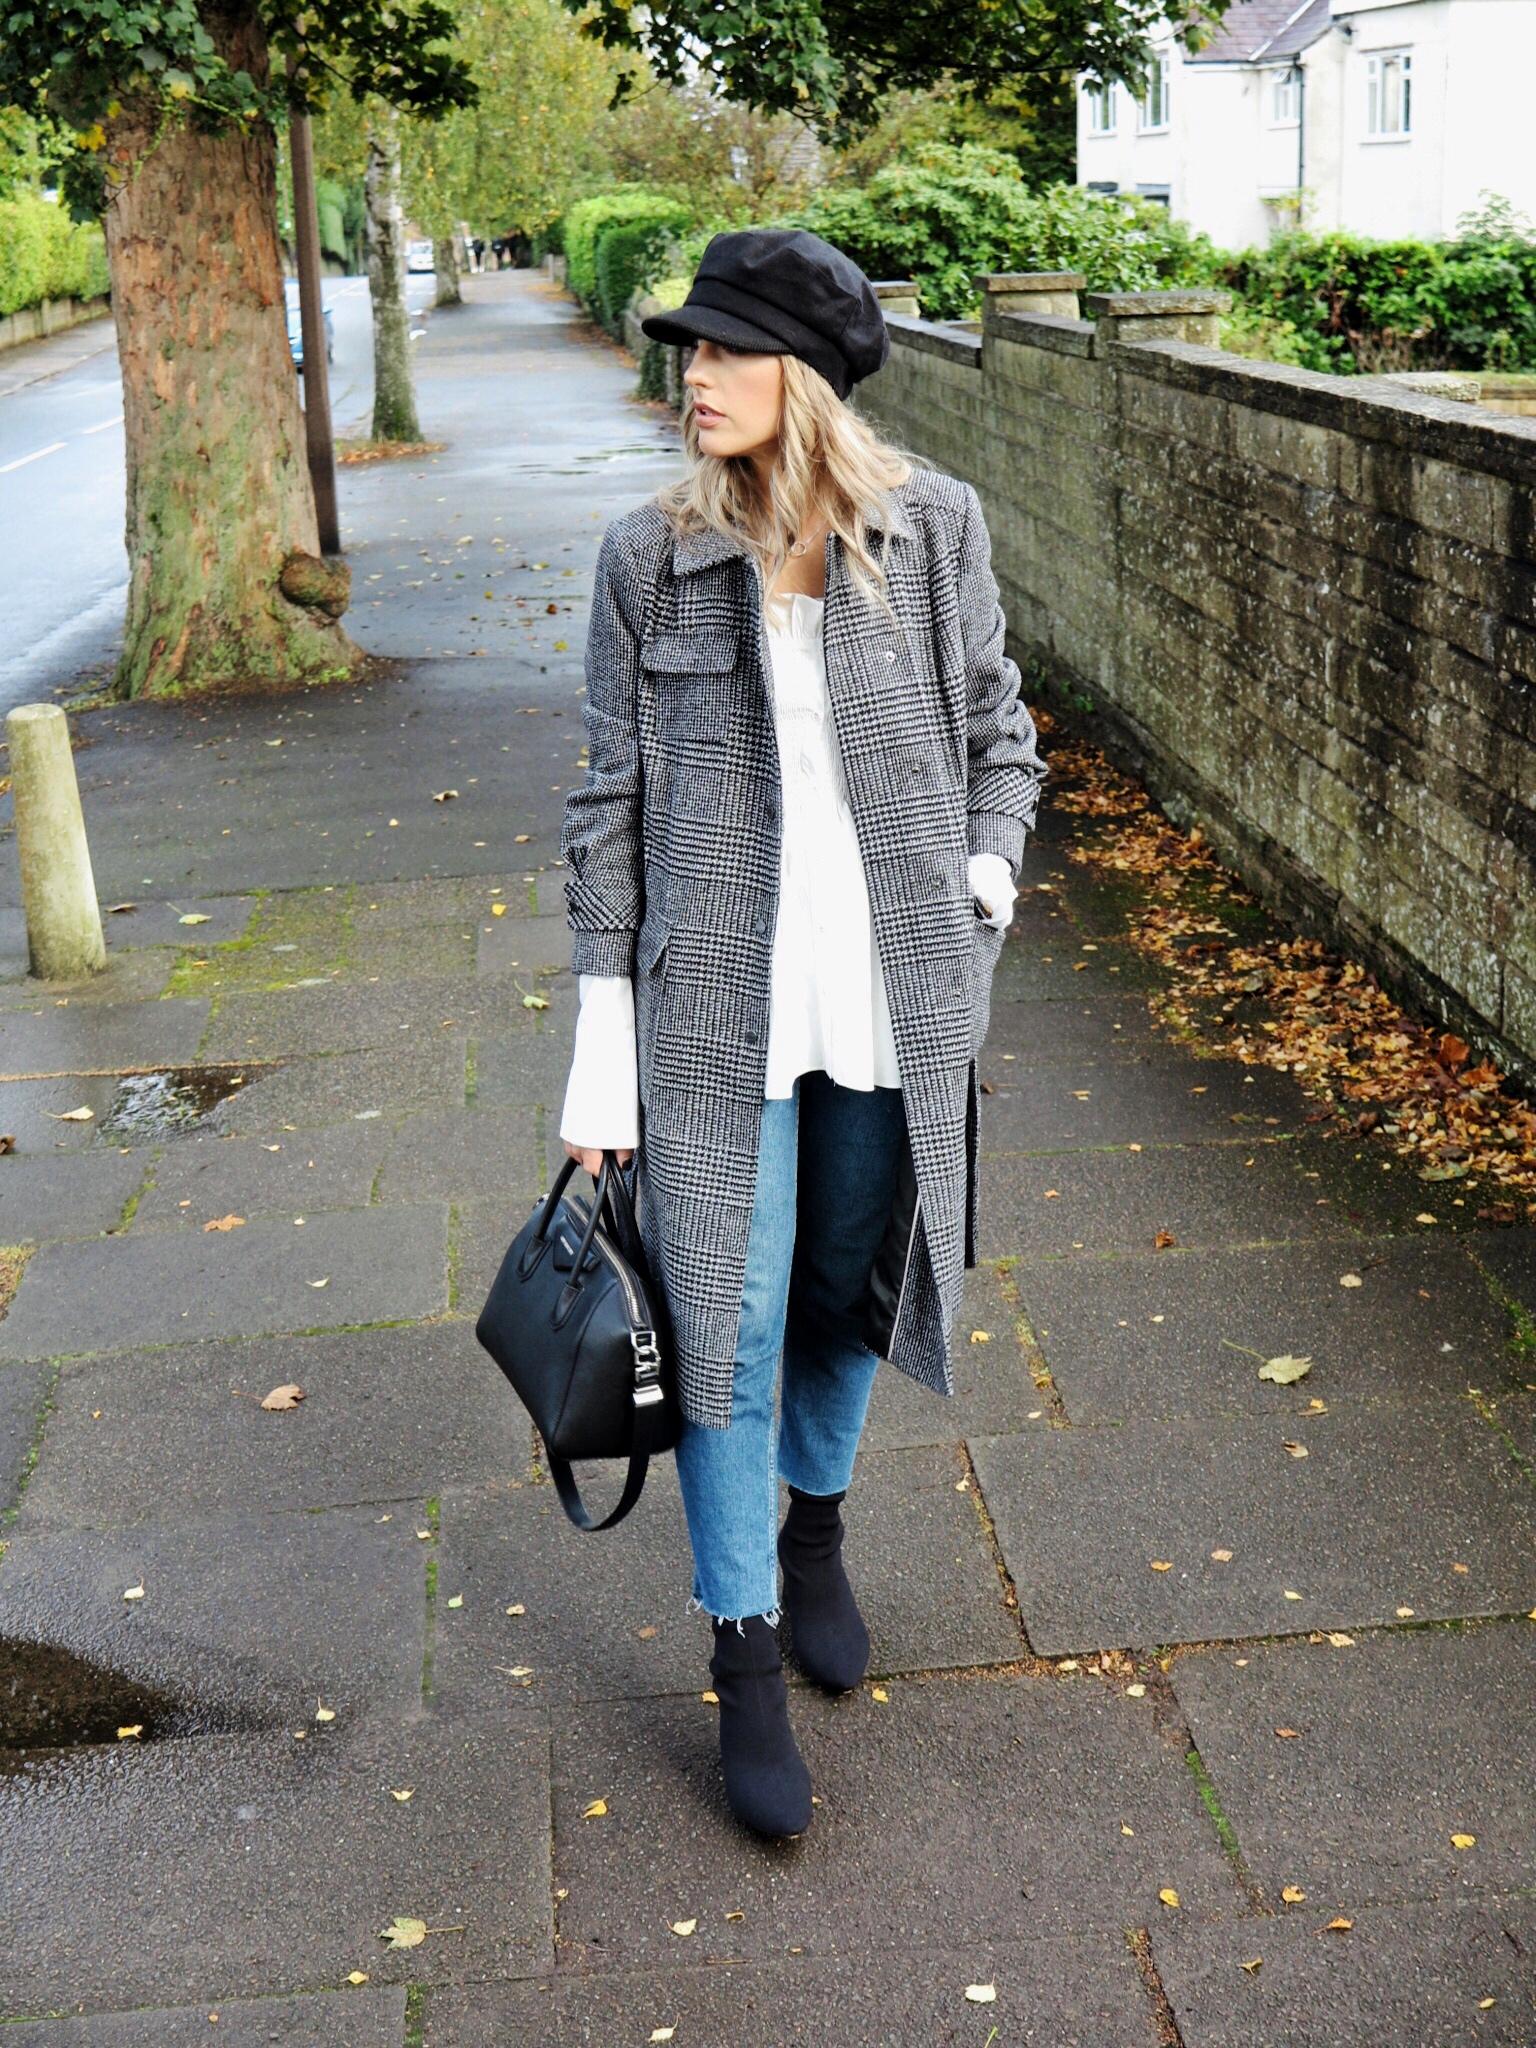 Check coat streetstyle for autumn with Topshop straight leg jeans